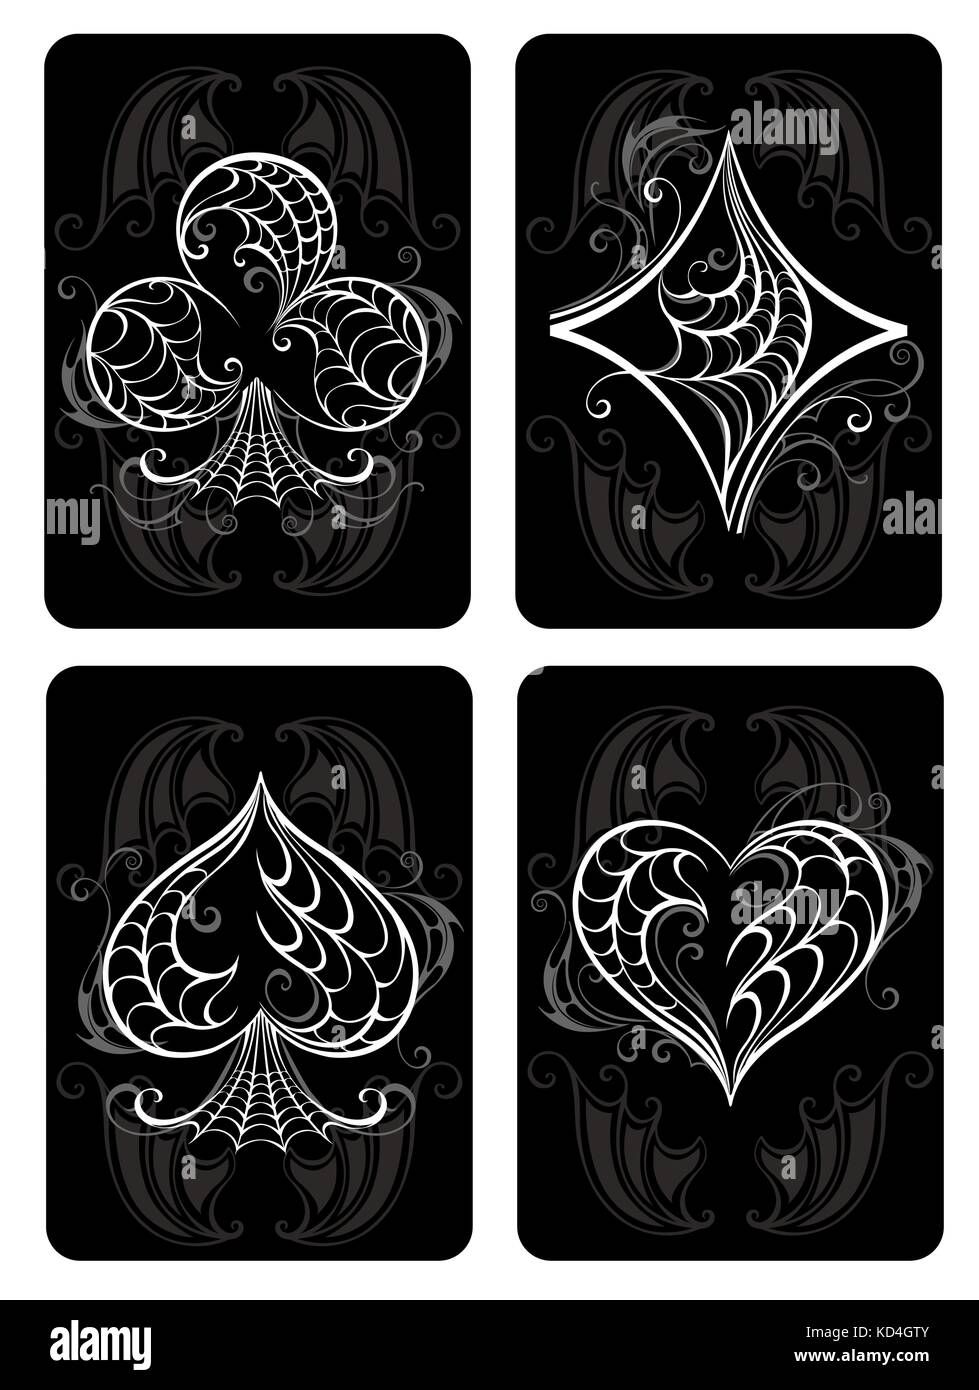 Black playing cards with white symbols symbols of playing cards black playing cards with white symbols symbols of playing cards symbols of playing cards biocorpaavc